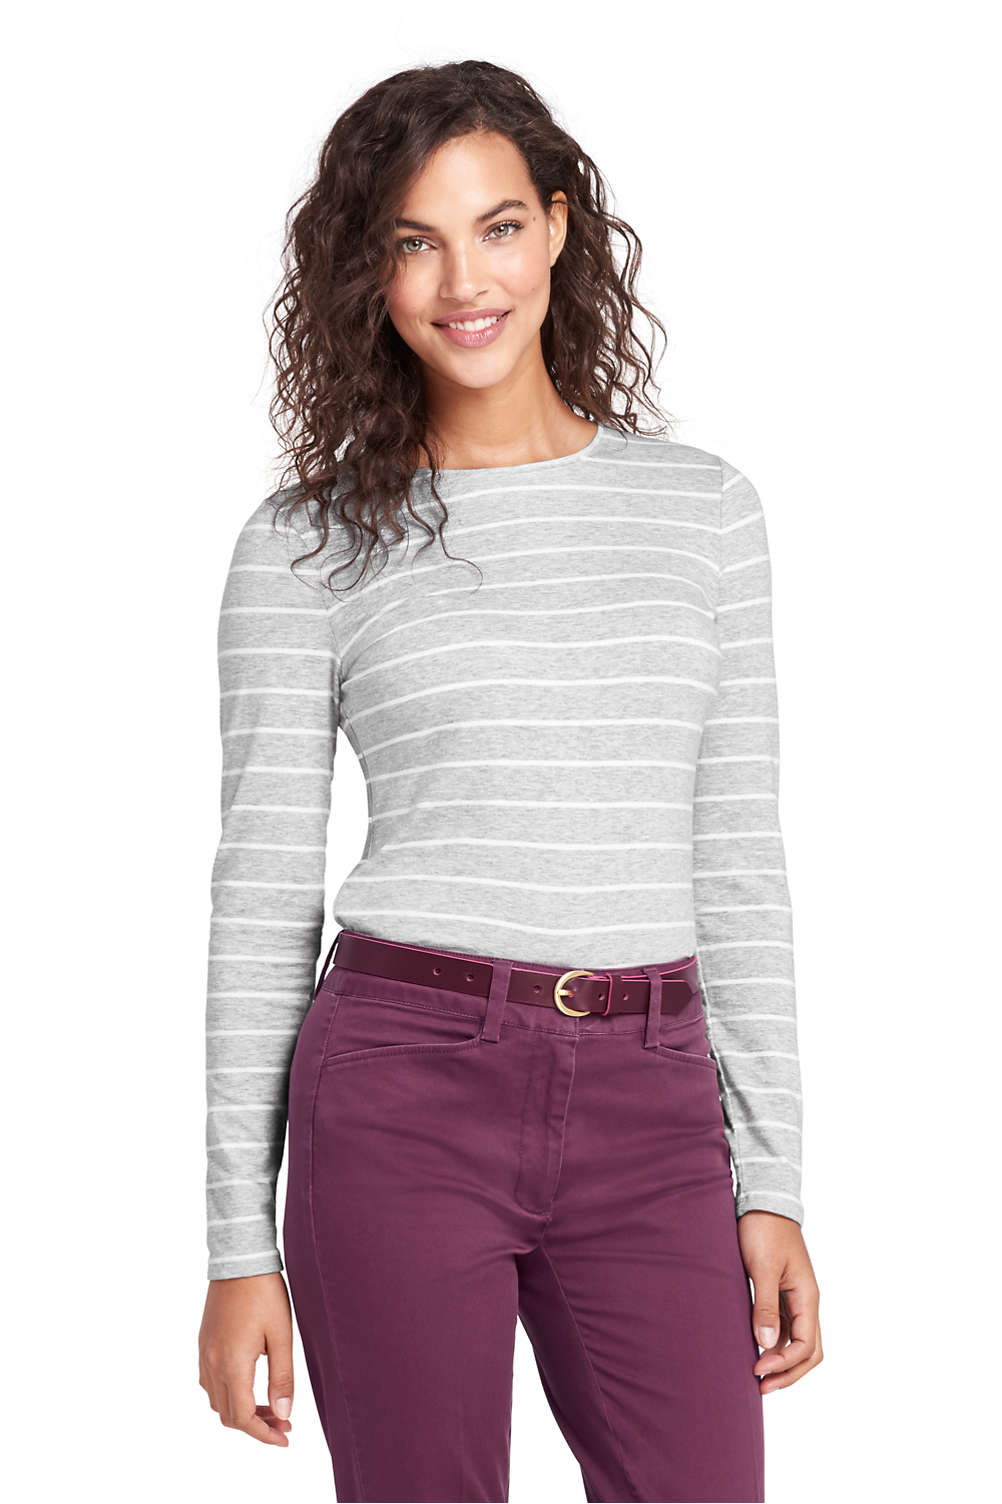 b27cacd4da99 Women's Lightweight Fitted Long Sleeve T-Shirt - Shaped Layering Crewneck  Stripe from Lands' End